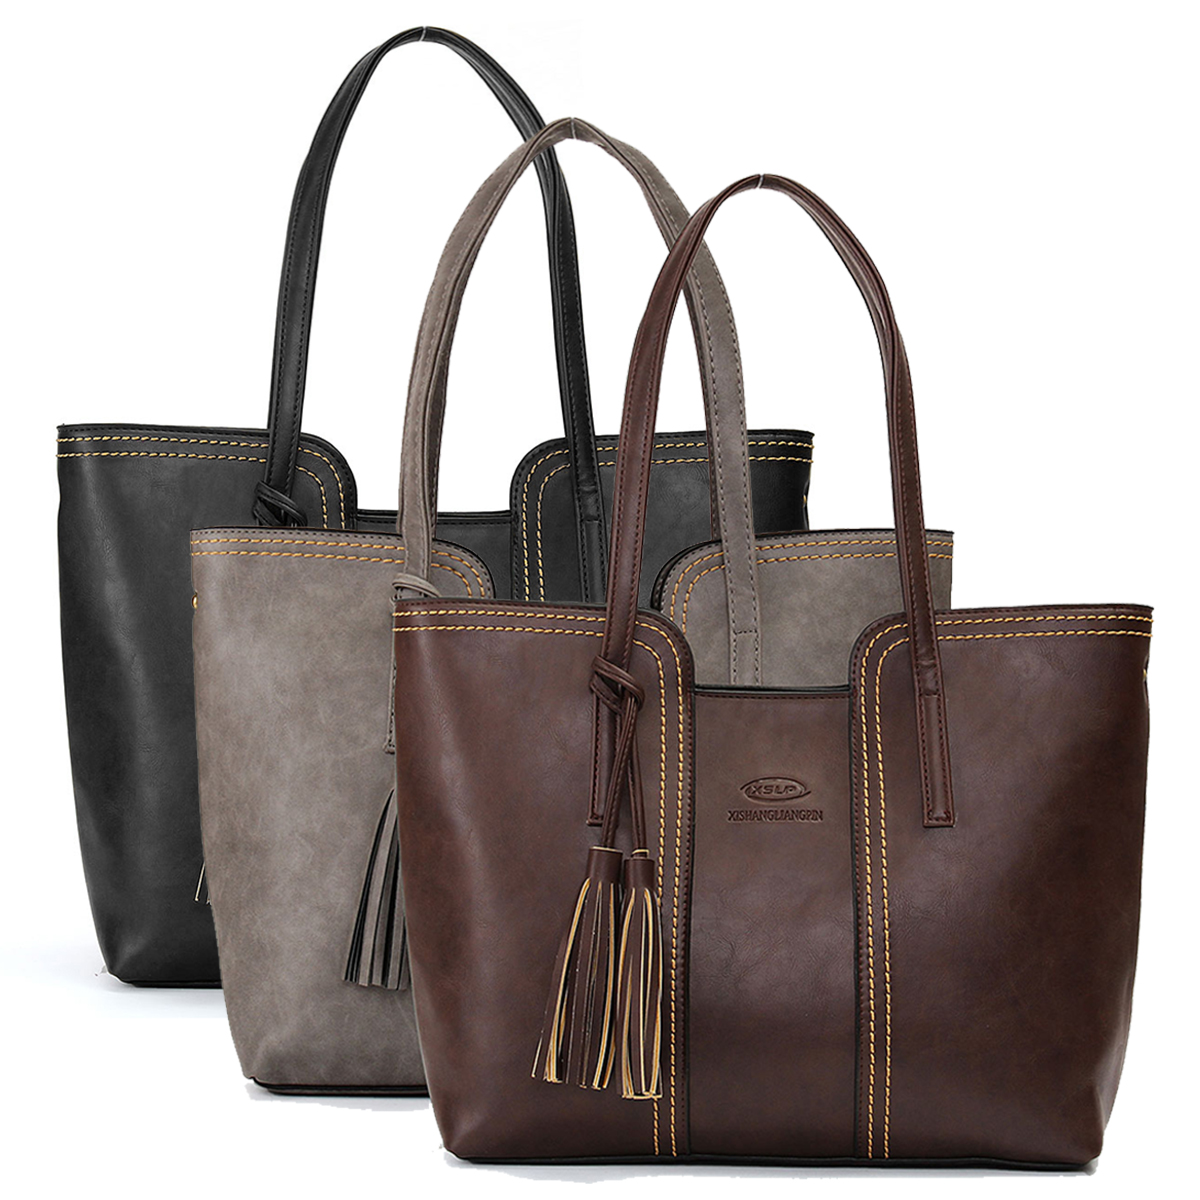 Fashion New Lady Women PU Leather Handbag Shoulder Bags Tote Purse Messenger Bag,Grey color